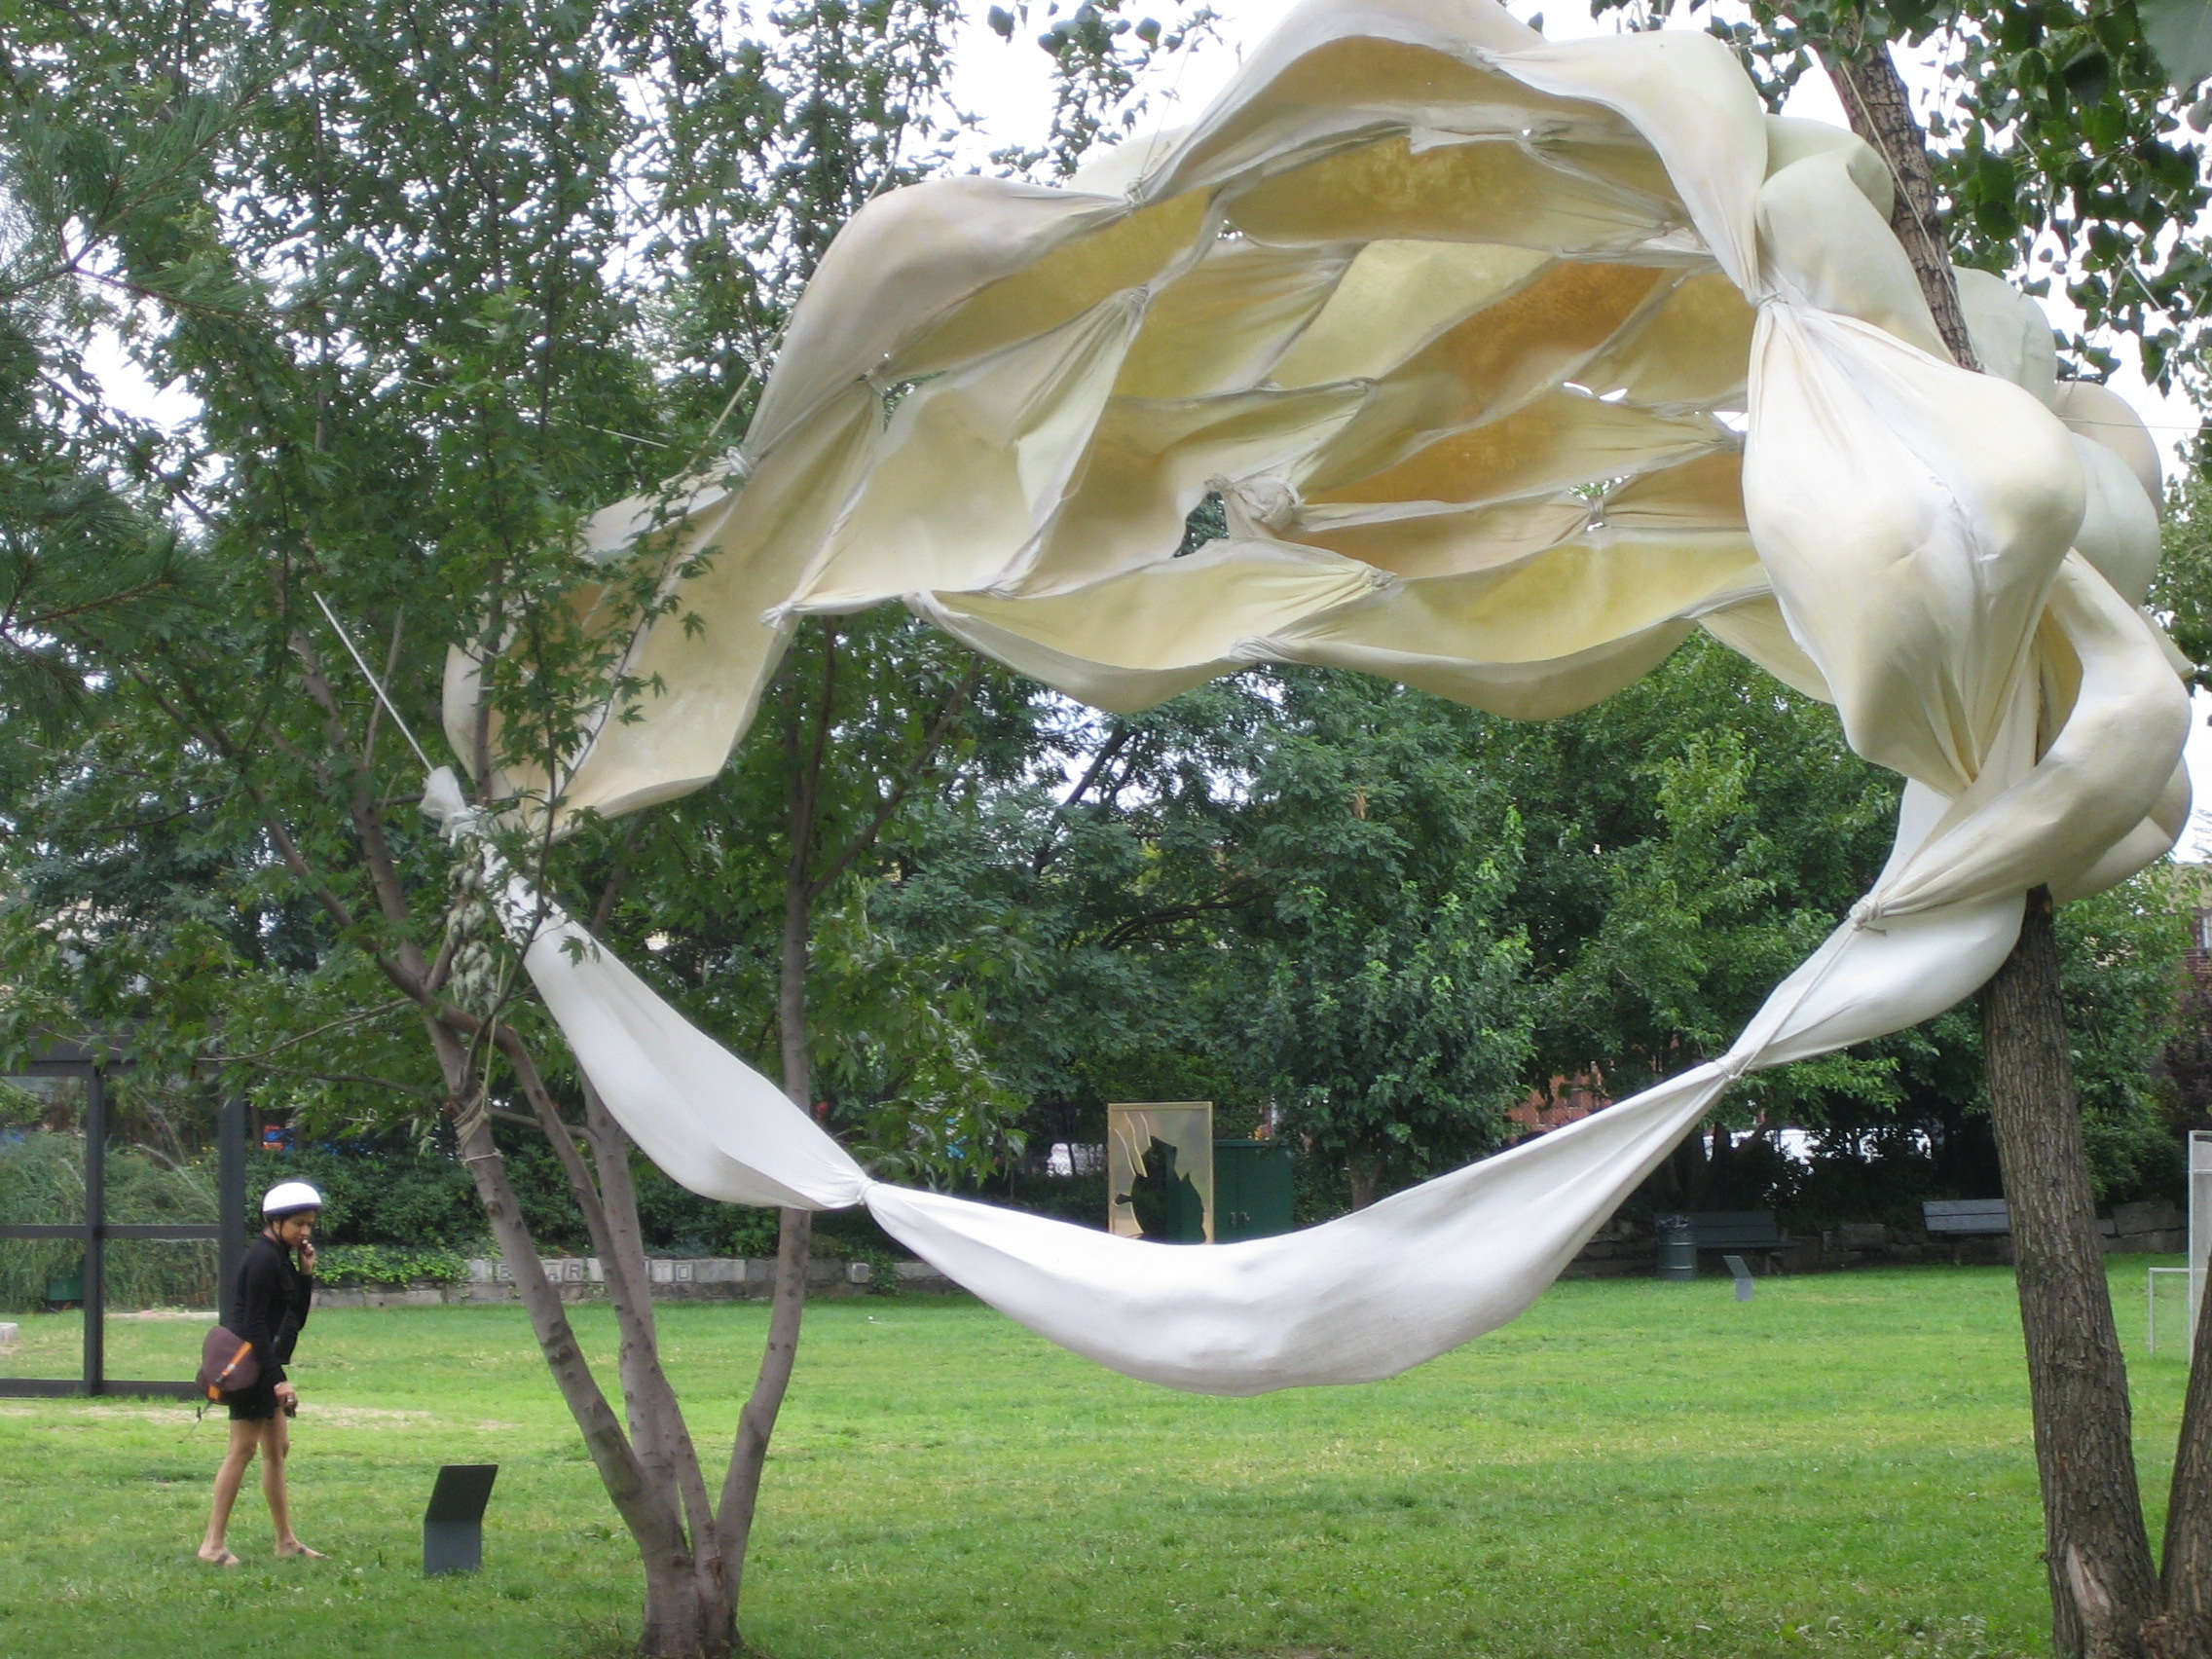 There's always something to be found in Socrates Sculpture Park